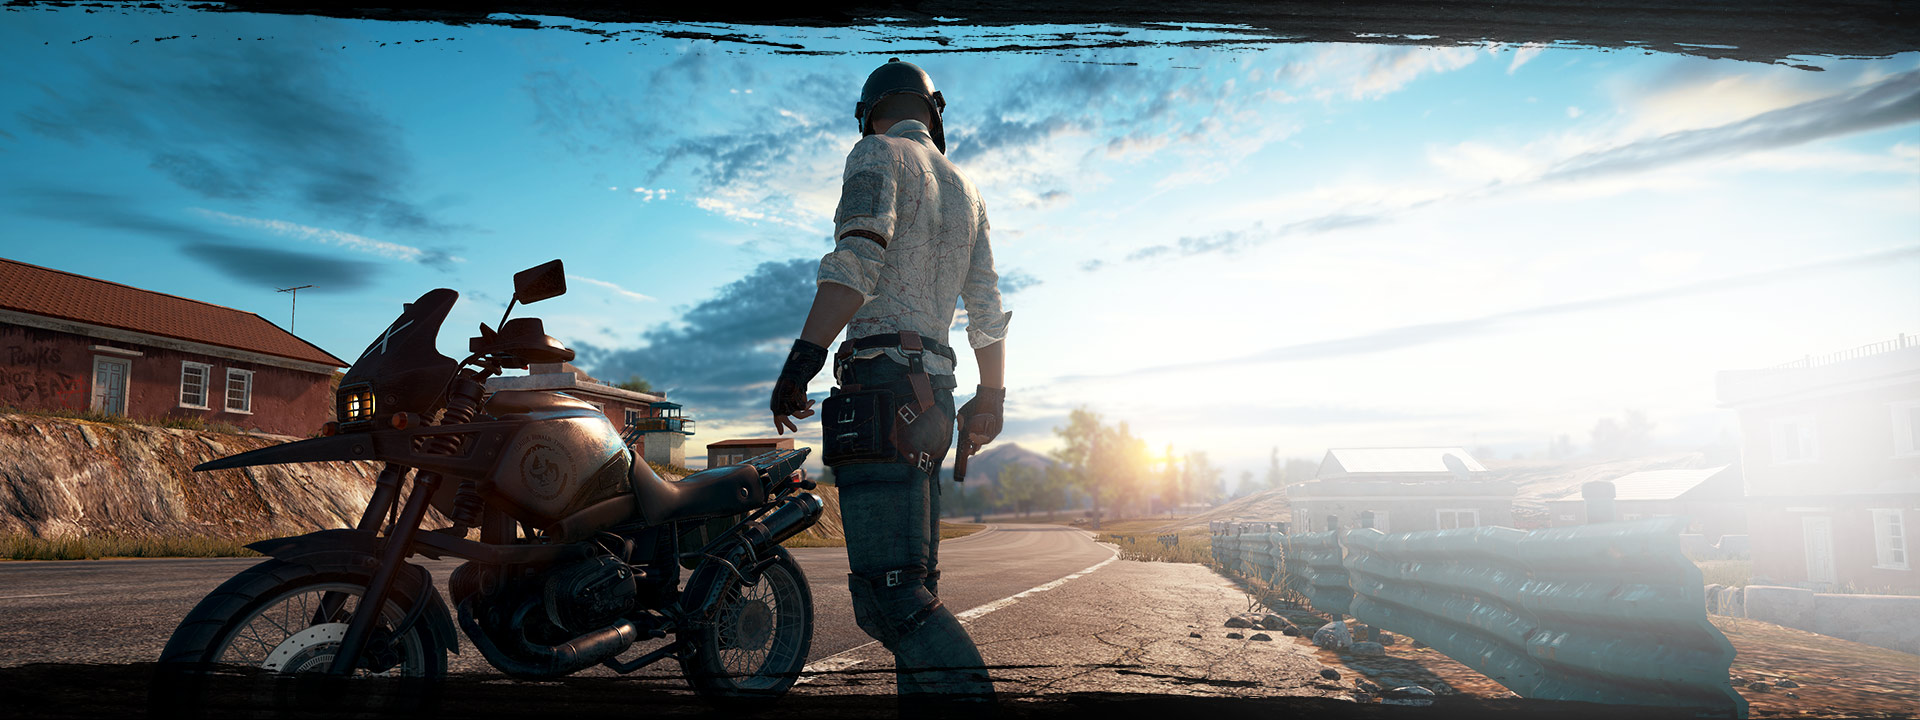 Playerunknowns character standing in front of motorcylce in the street with pistol